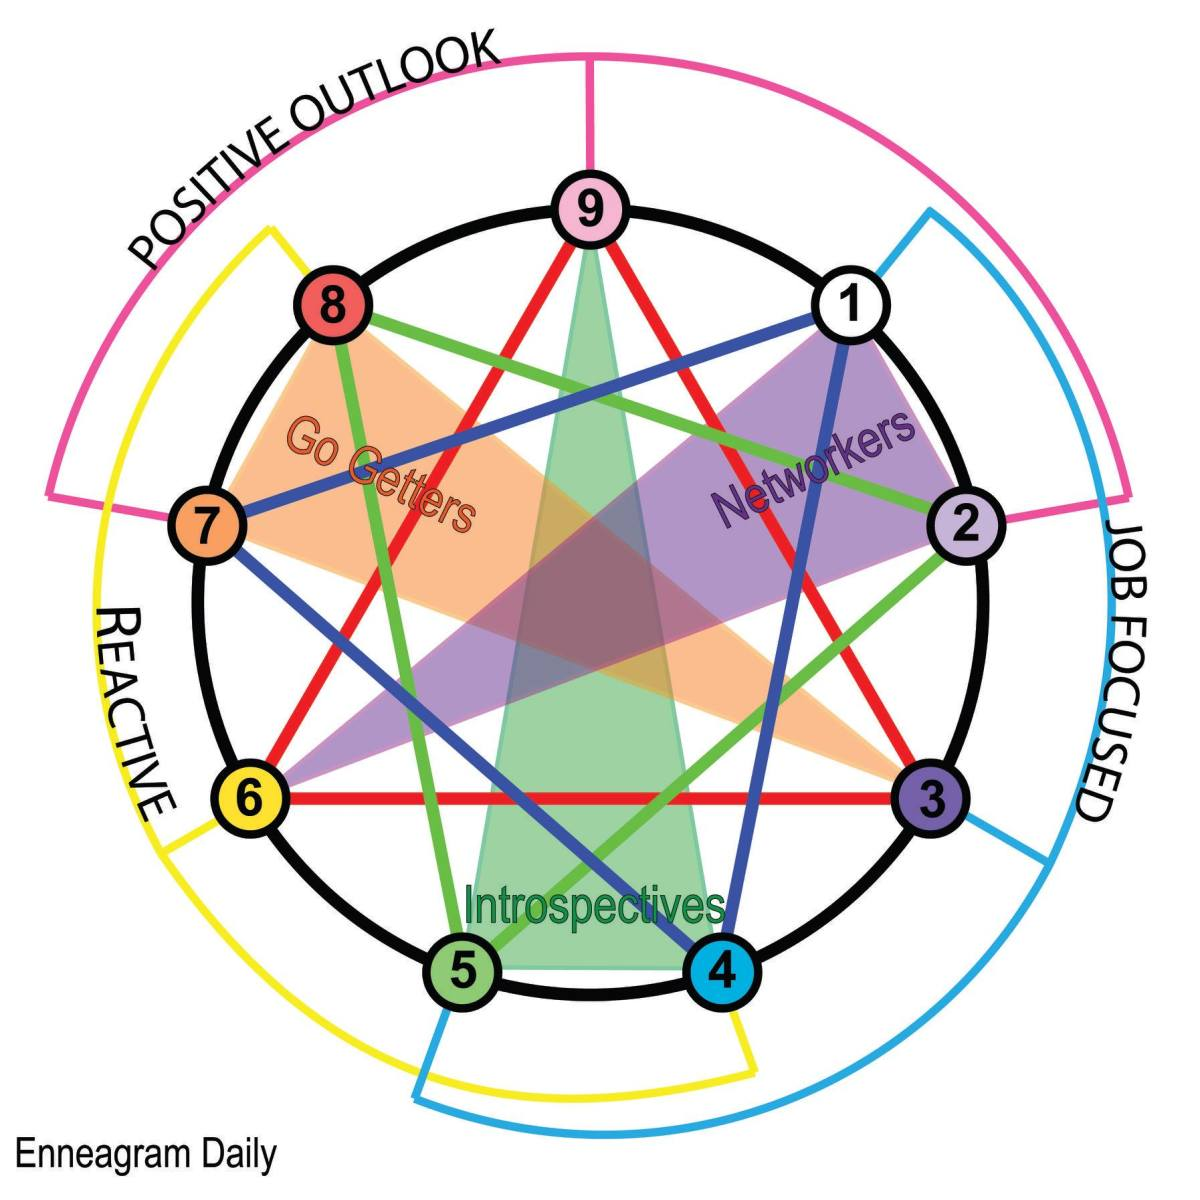 Four Core Enneatriads for Each Central Pattern (Type)